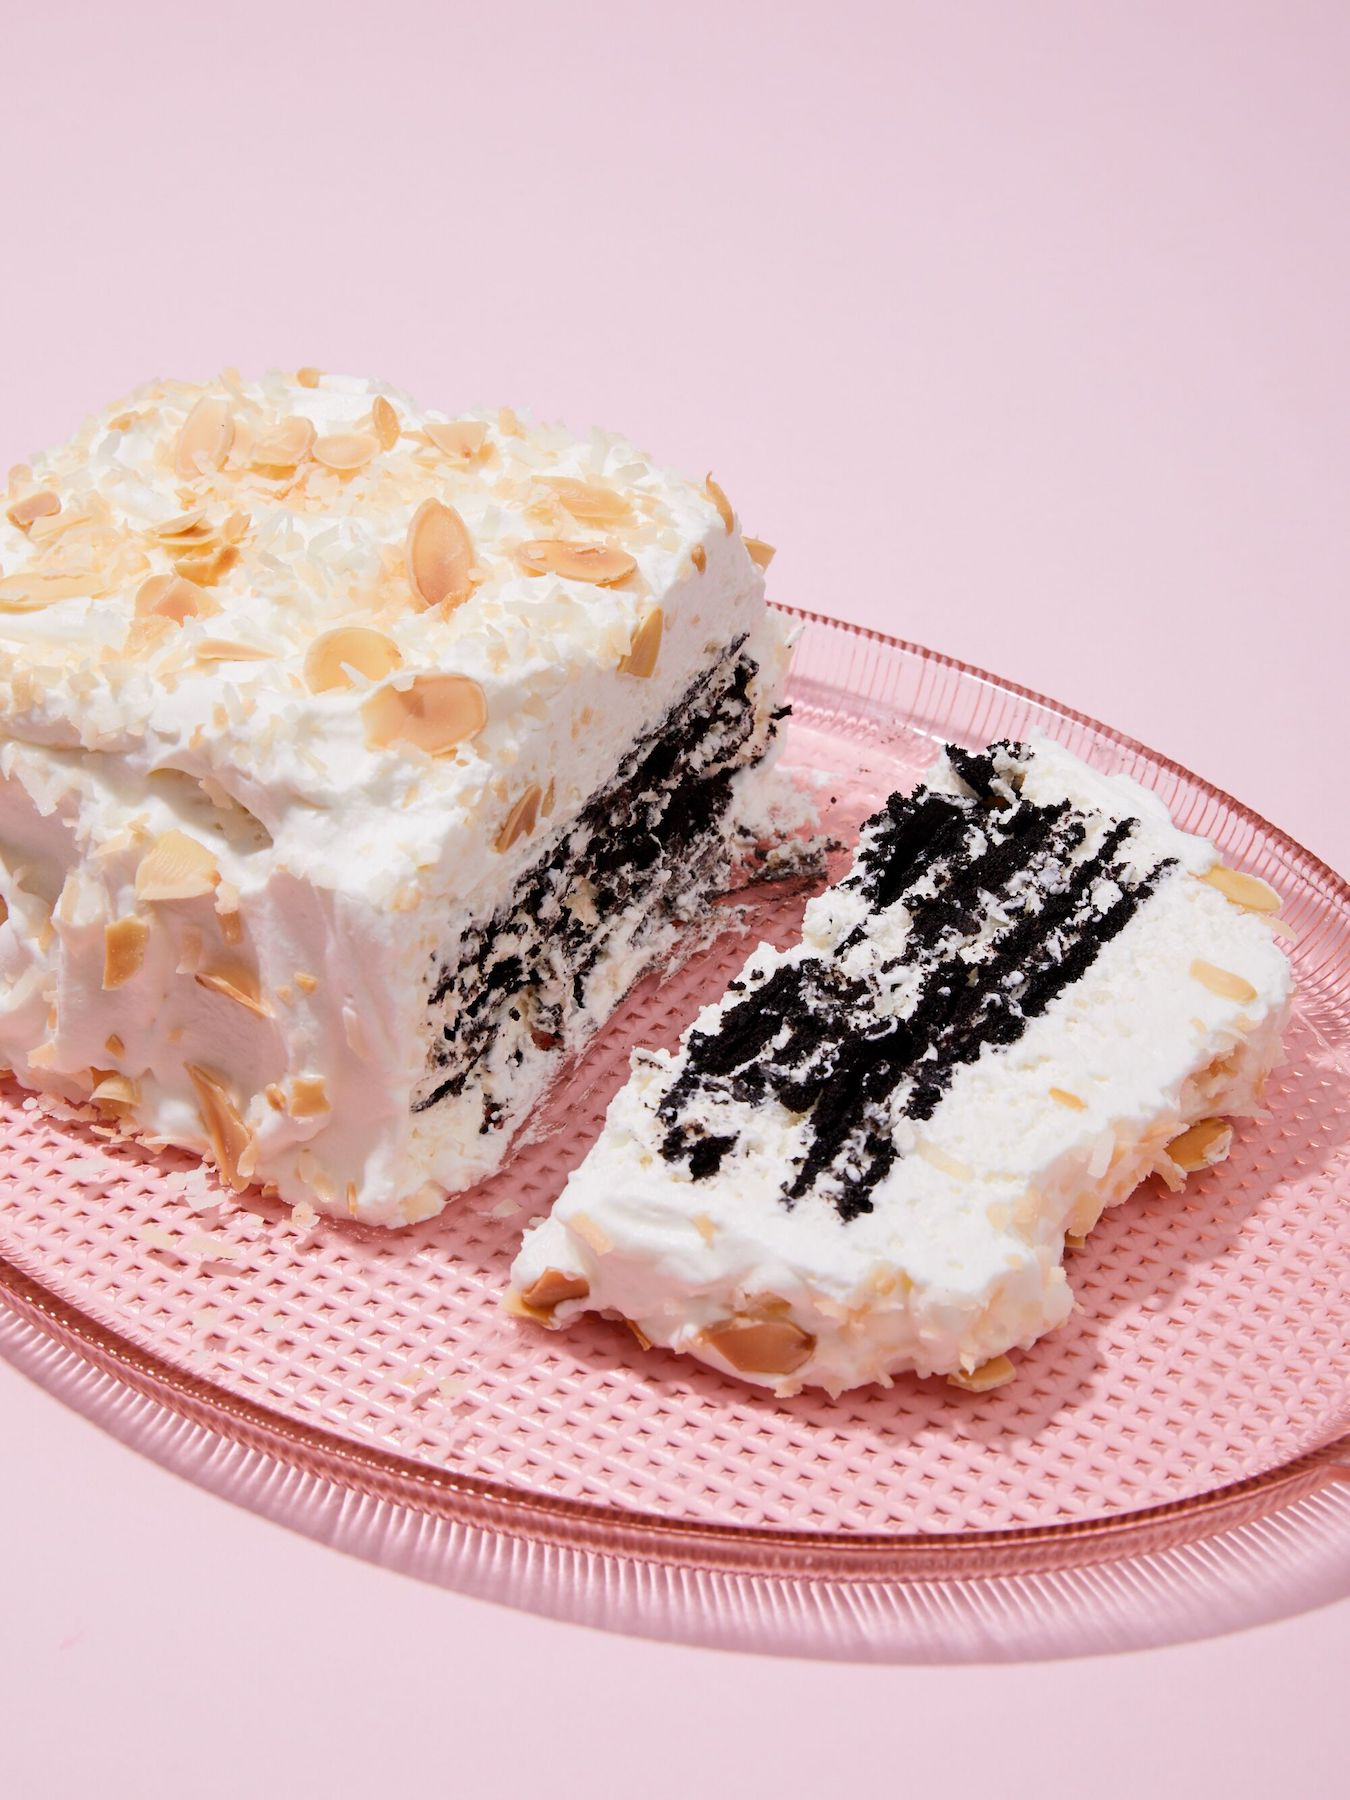 <p>Coconut Chocolate Icebox Cake with Toasted Almonds</p>